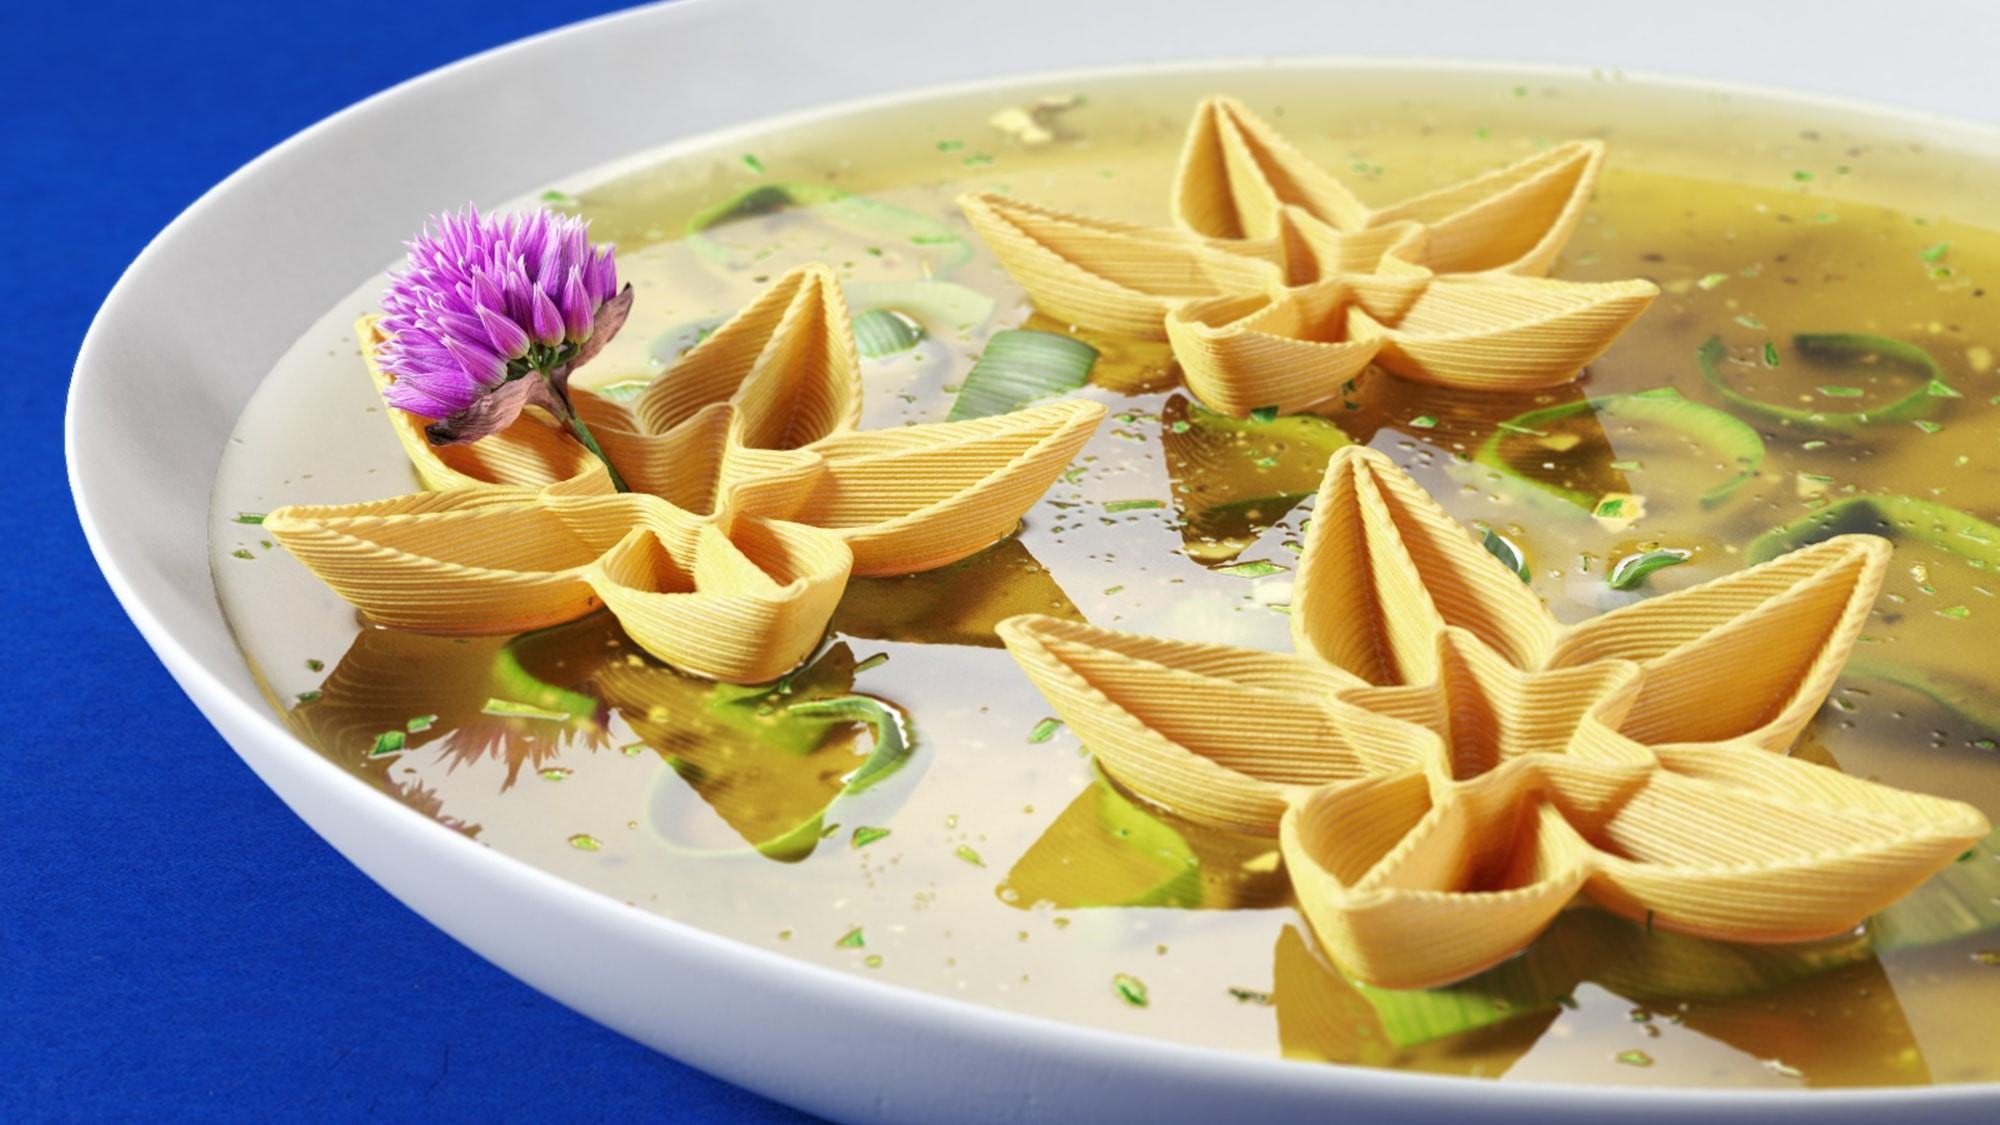 Barilla Announces 3 Winners in 3D Printed Pasta Competition | All3DP